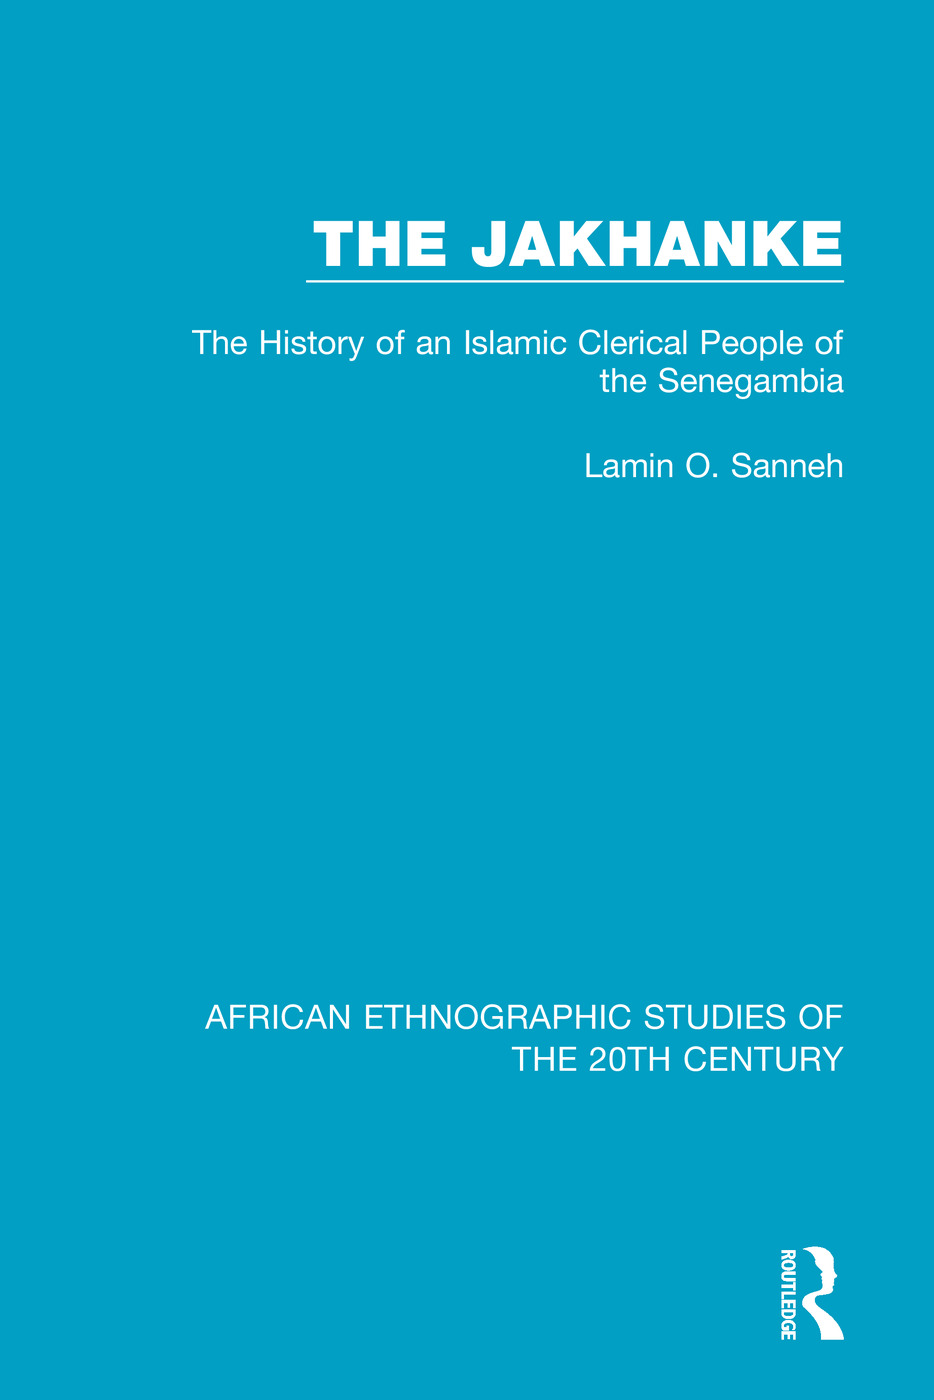 The Jakhanke: The History of an Islamic Clerical People of the Senegambia book cover